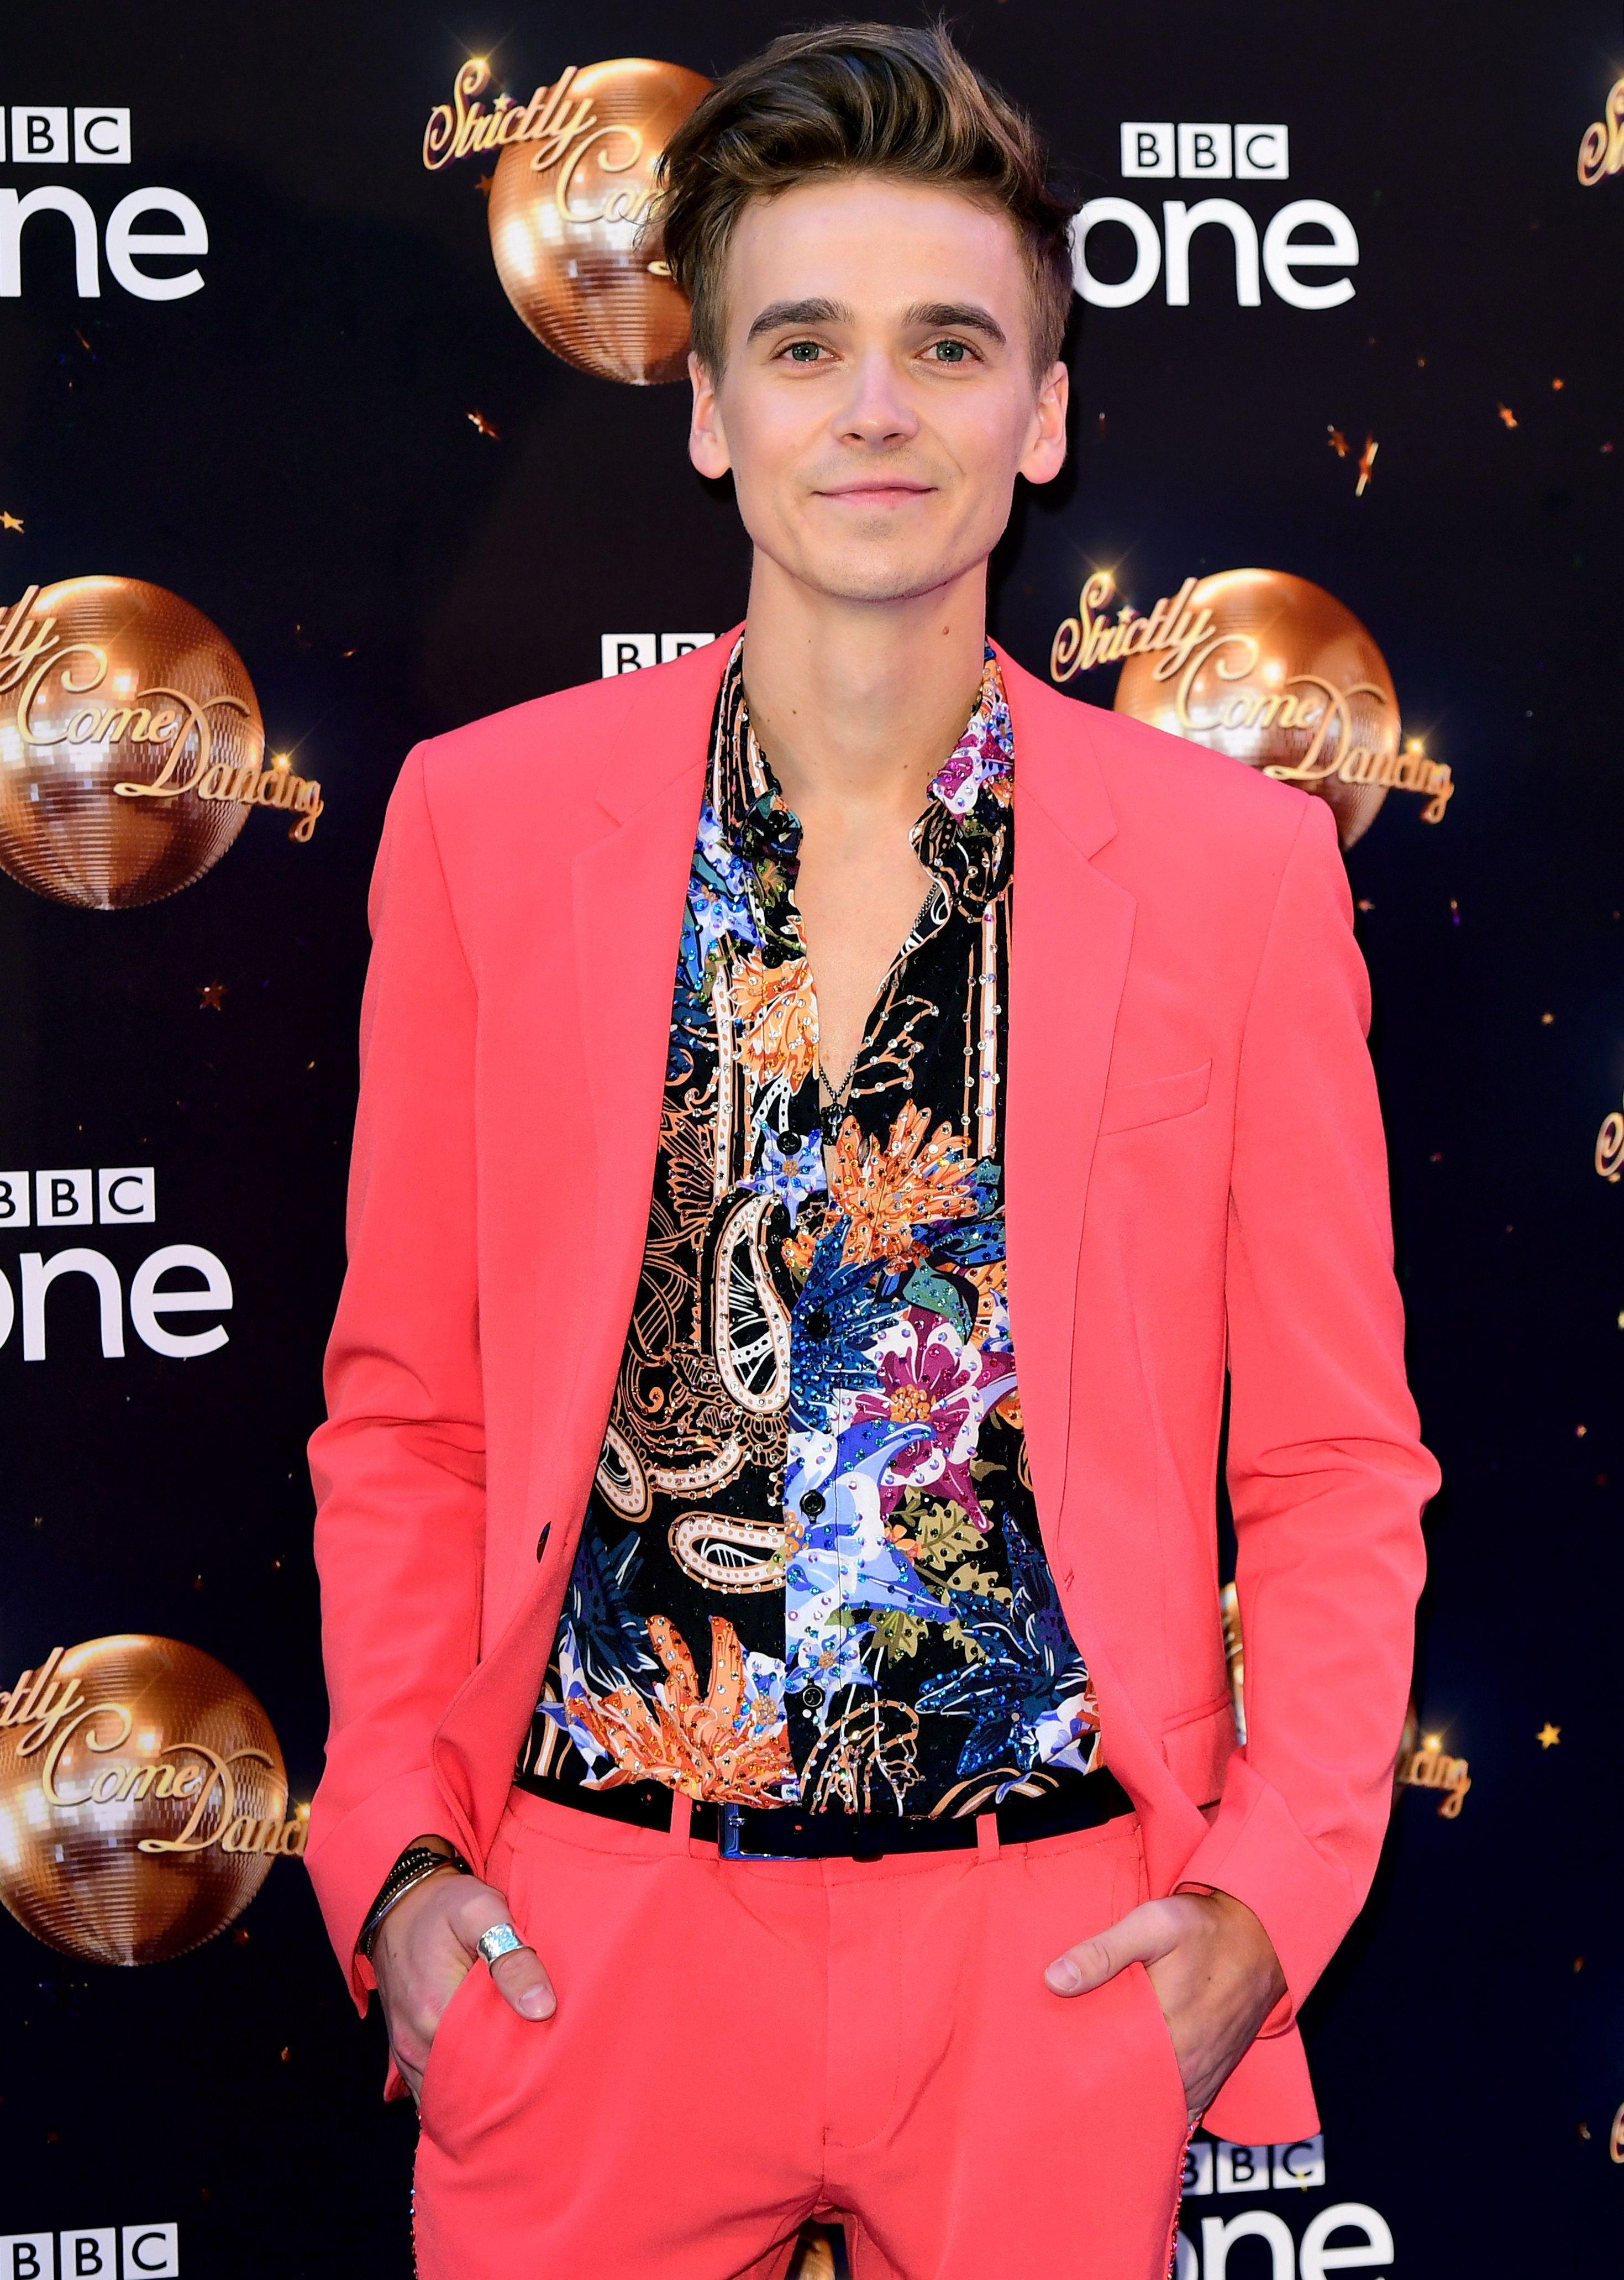 Strictly Come Dancing's Joe Sugg Admits He 'Expected' Backlash Over His